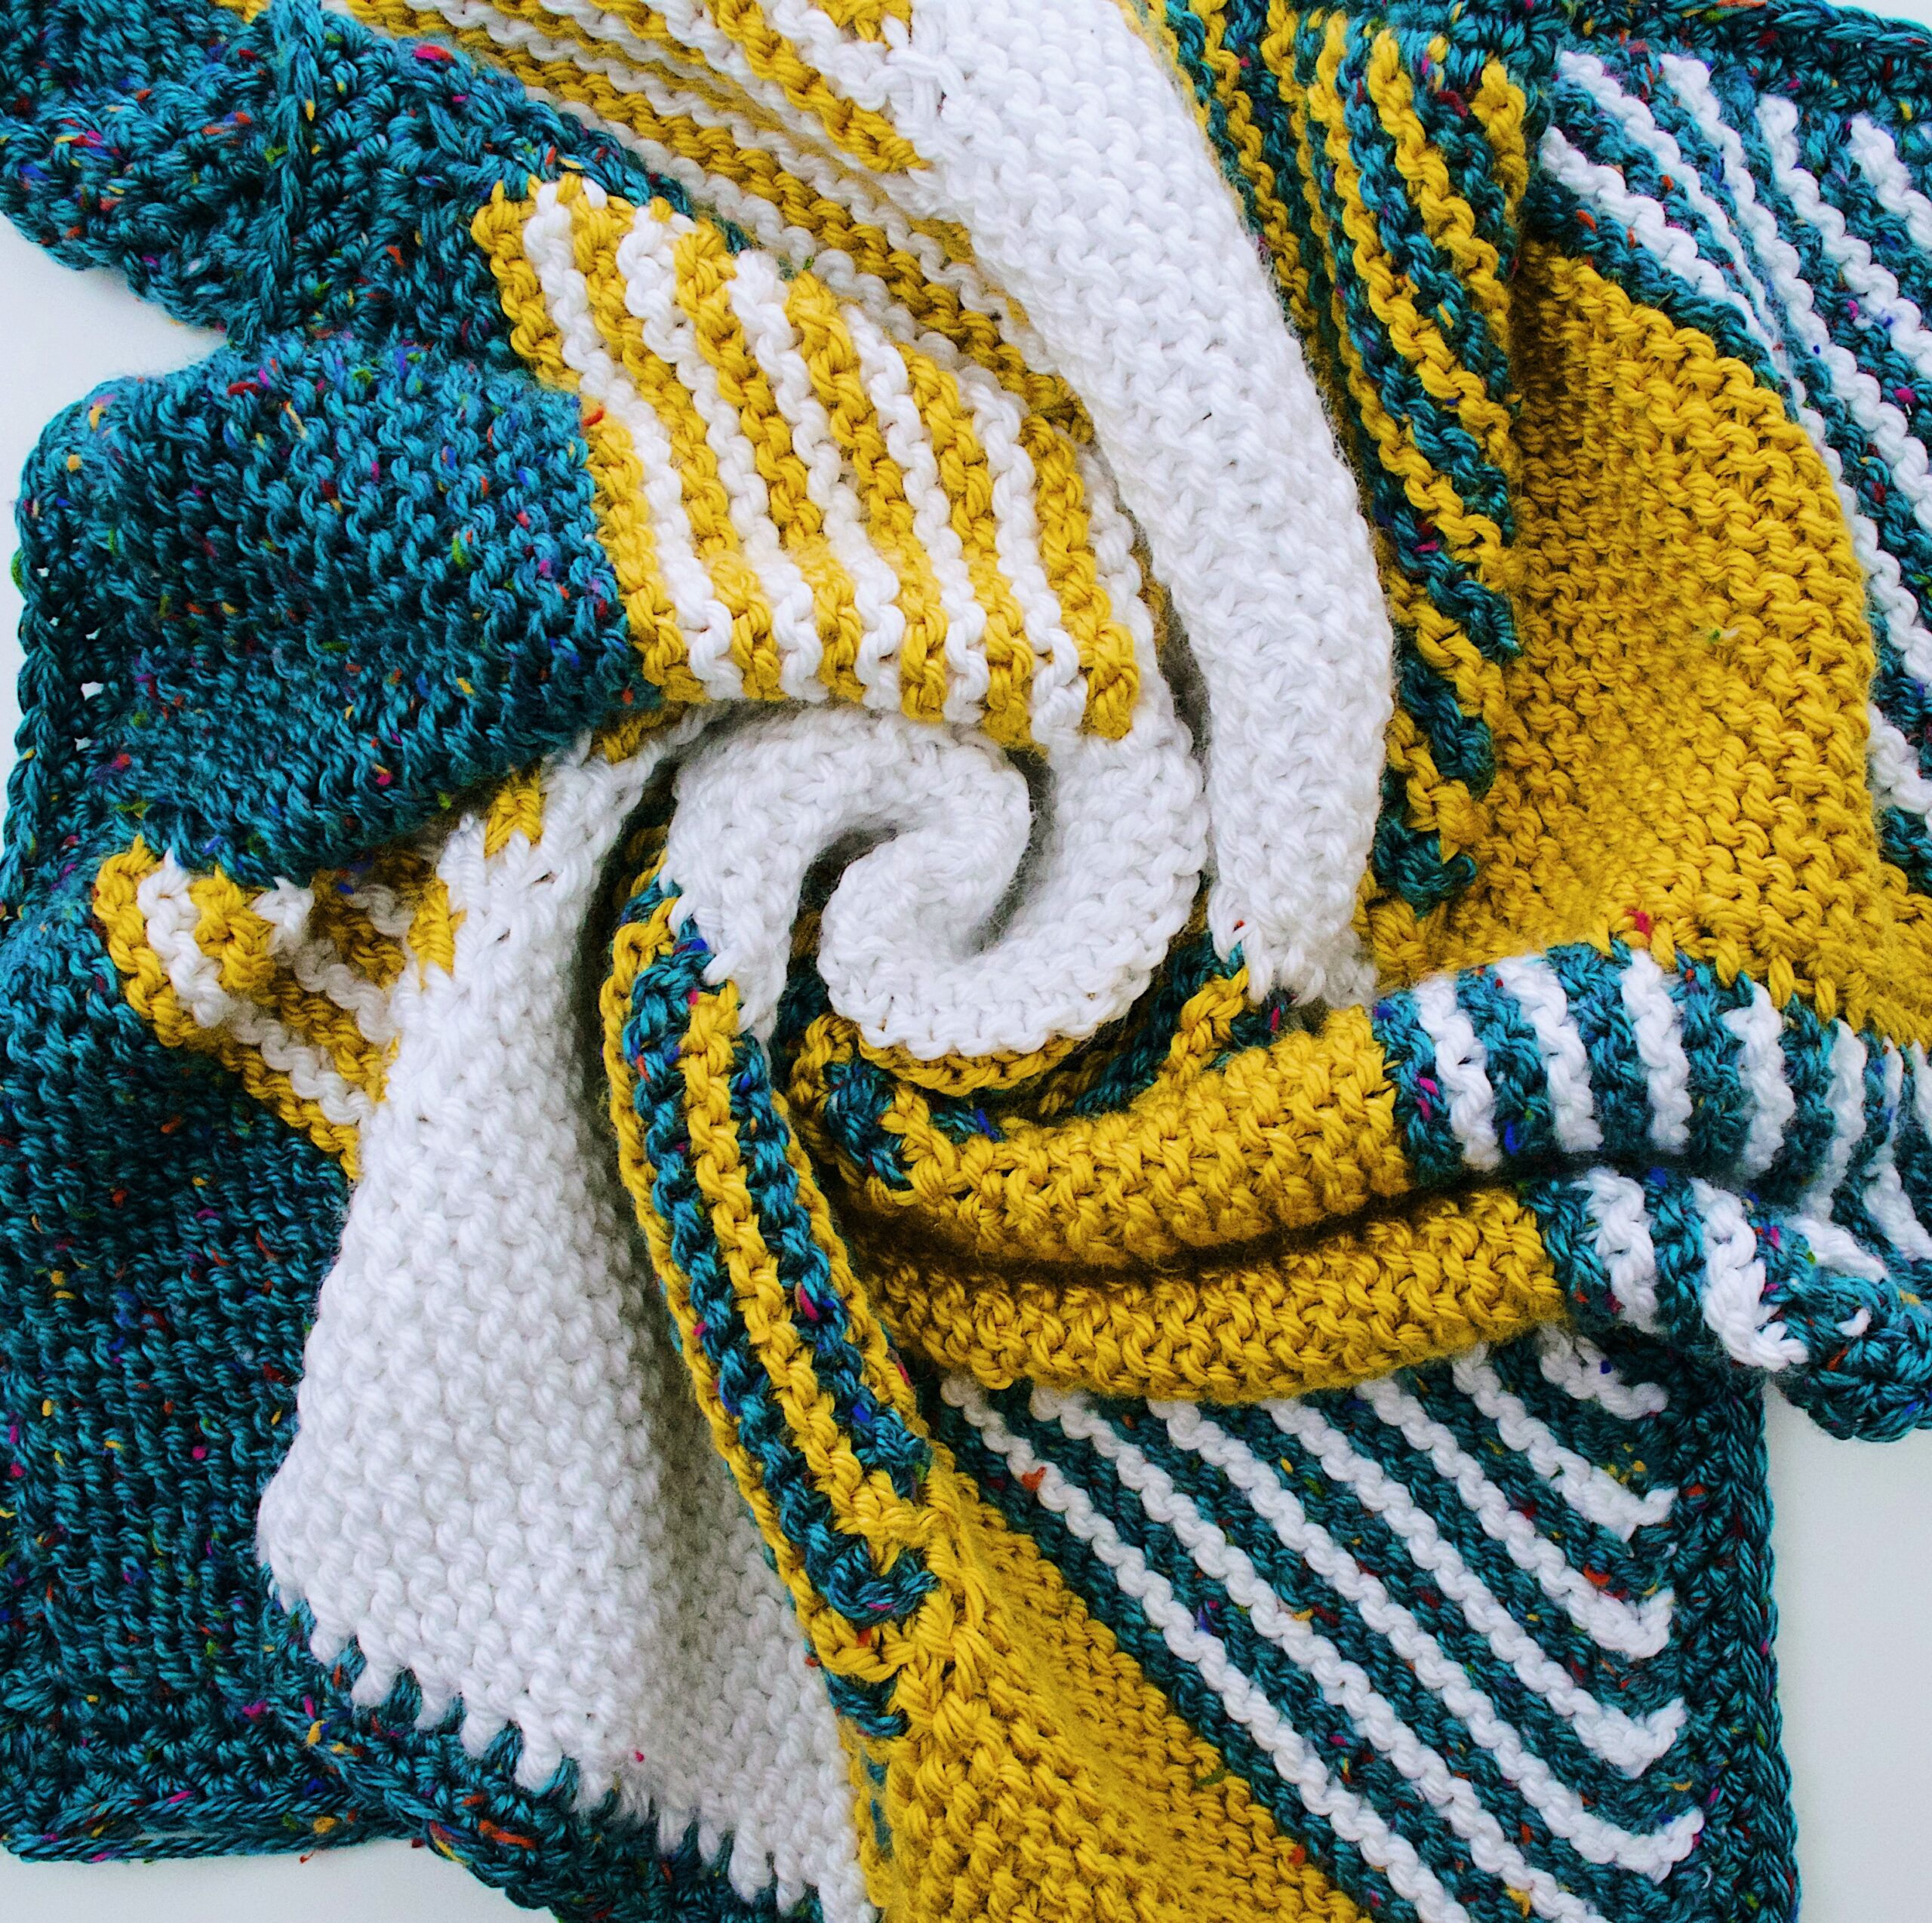 The Knitted Baby Blanket swirled together